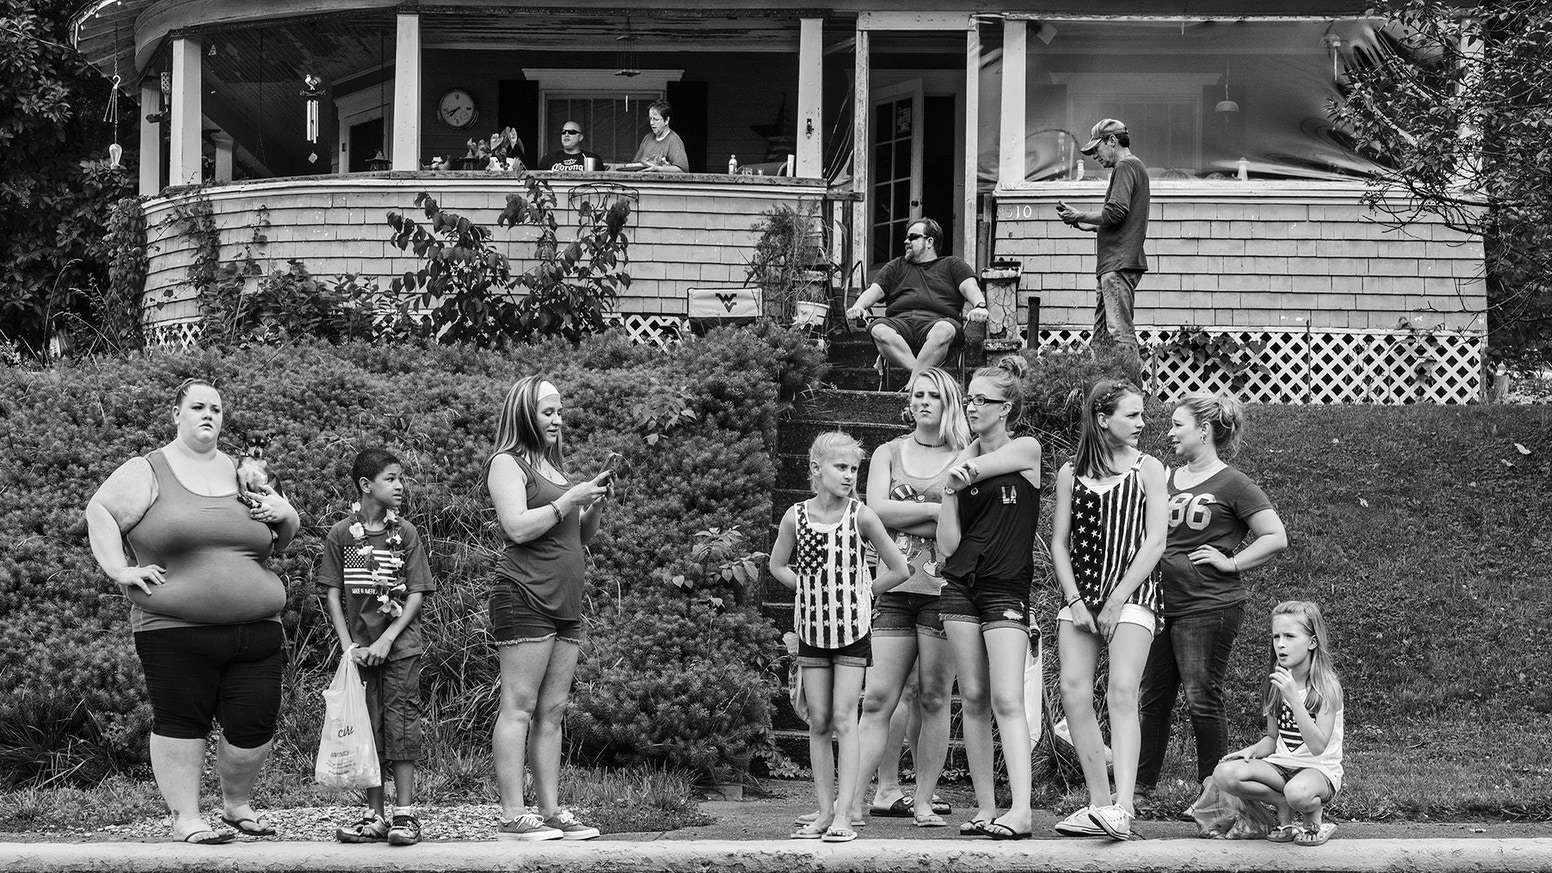 A beautiful lay-flat photo book.   A parade of Americans. One after the other, from one community to the next, building up a picture of Americans across the United States